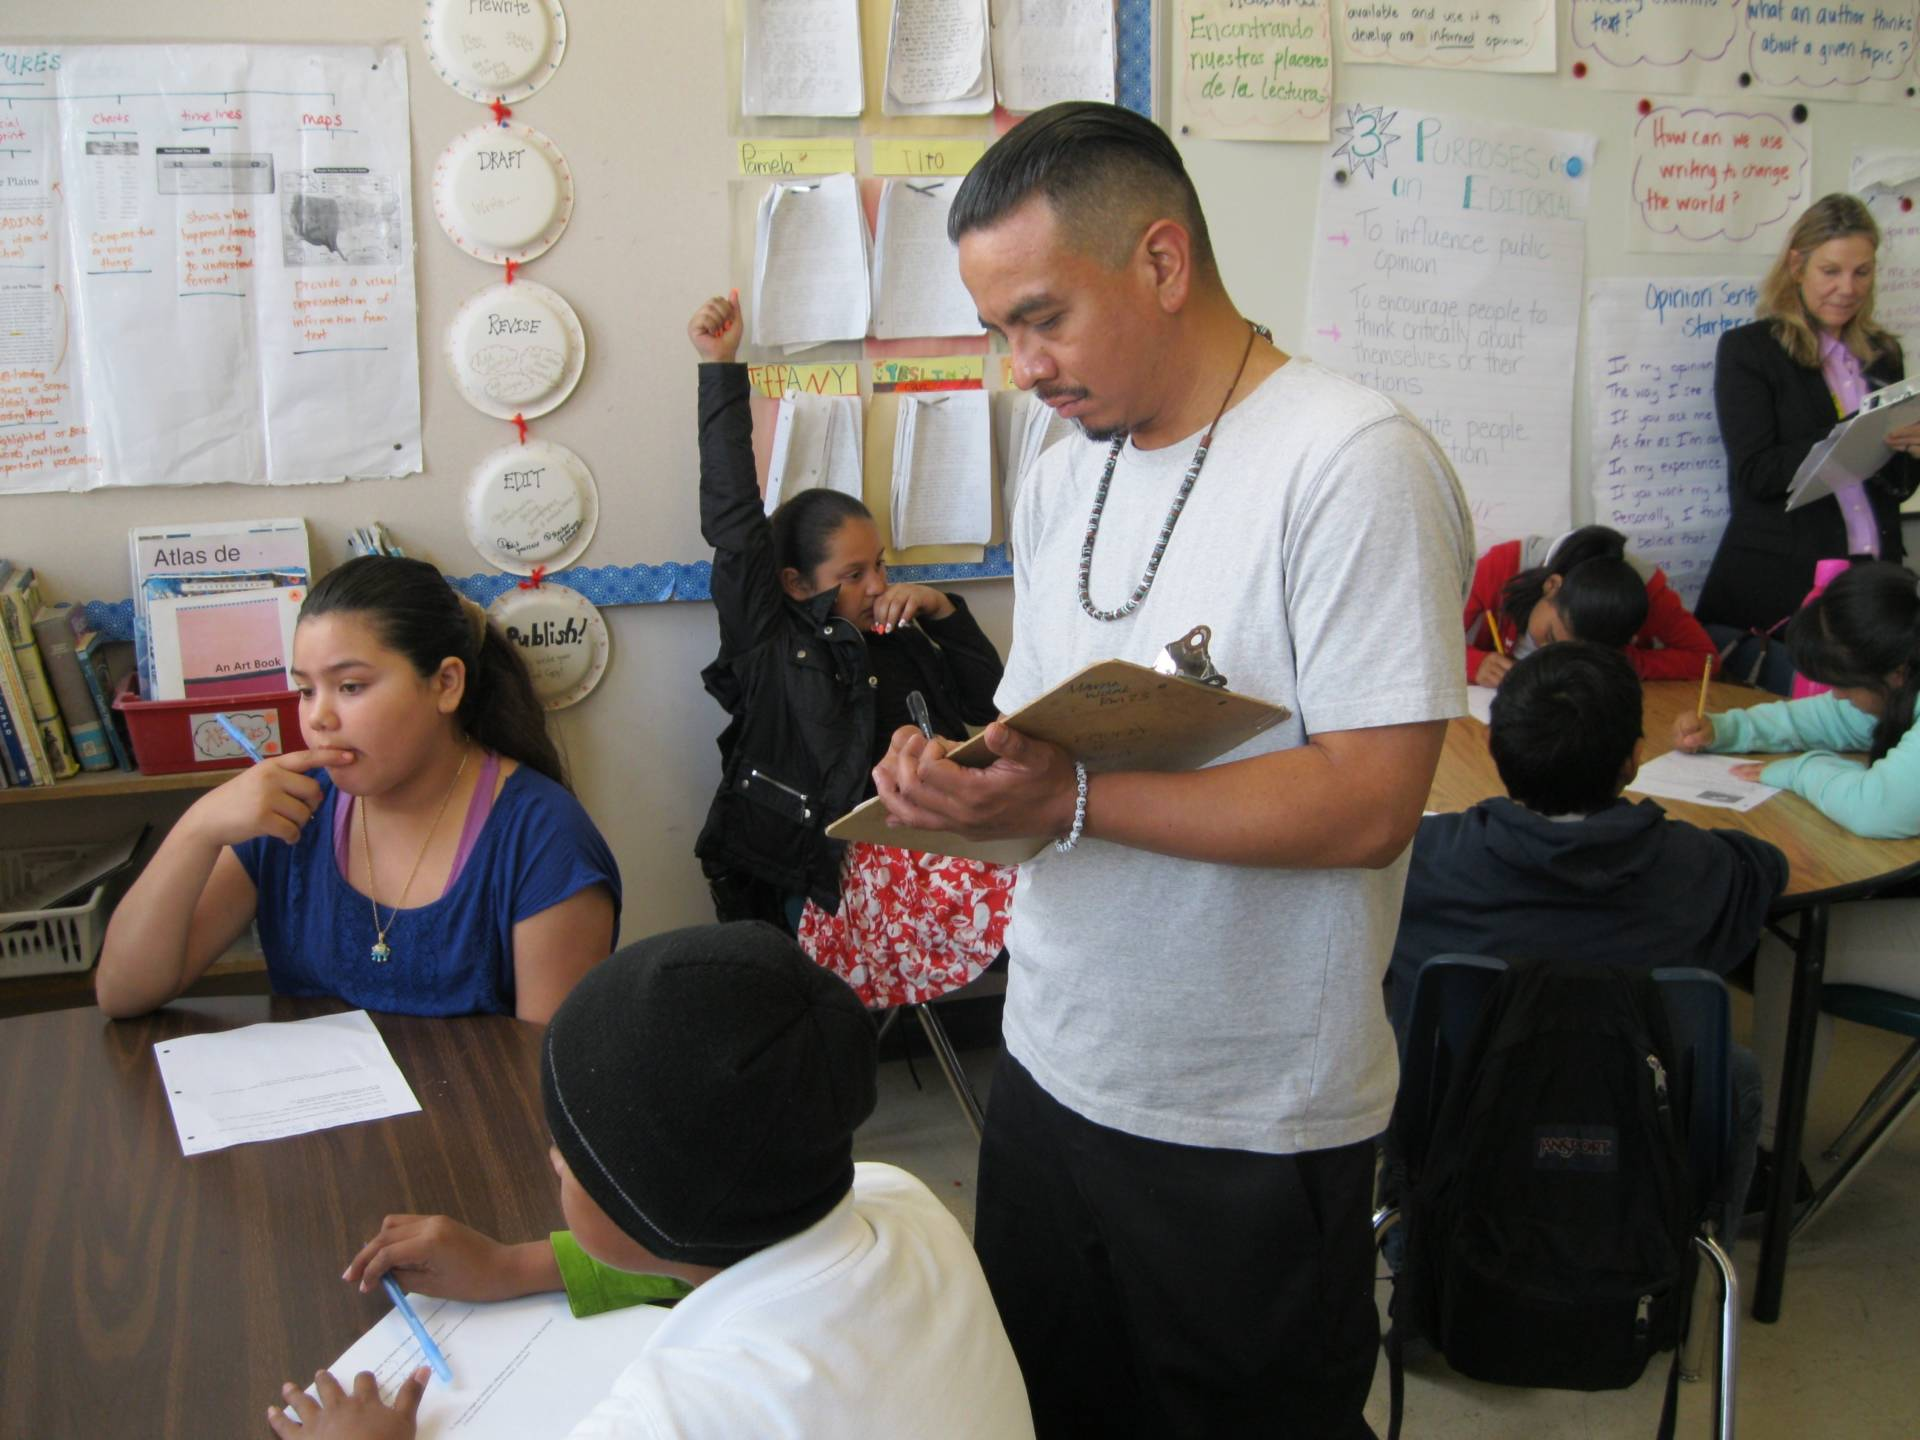 Fourth grade teacher Luis Novoa observes fifth graders working on a fractions problem.